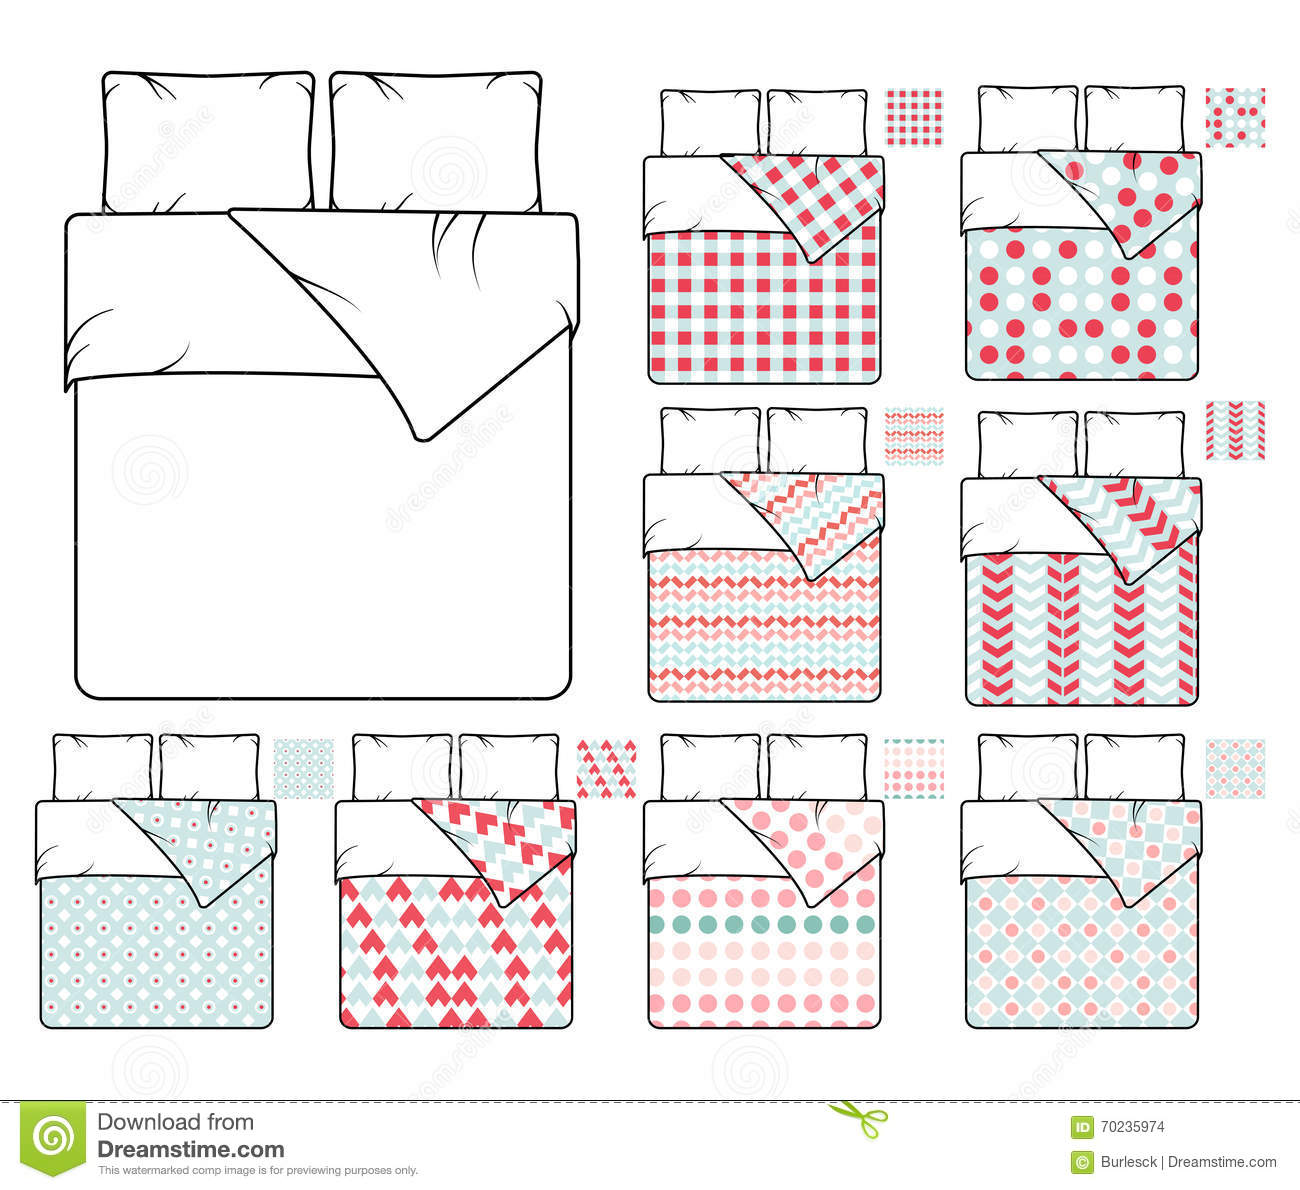 Bed Linen Template With Pillows Duvet Cover And Sheet